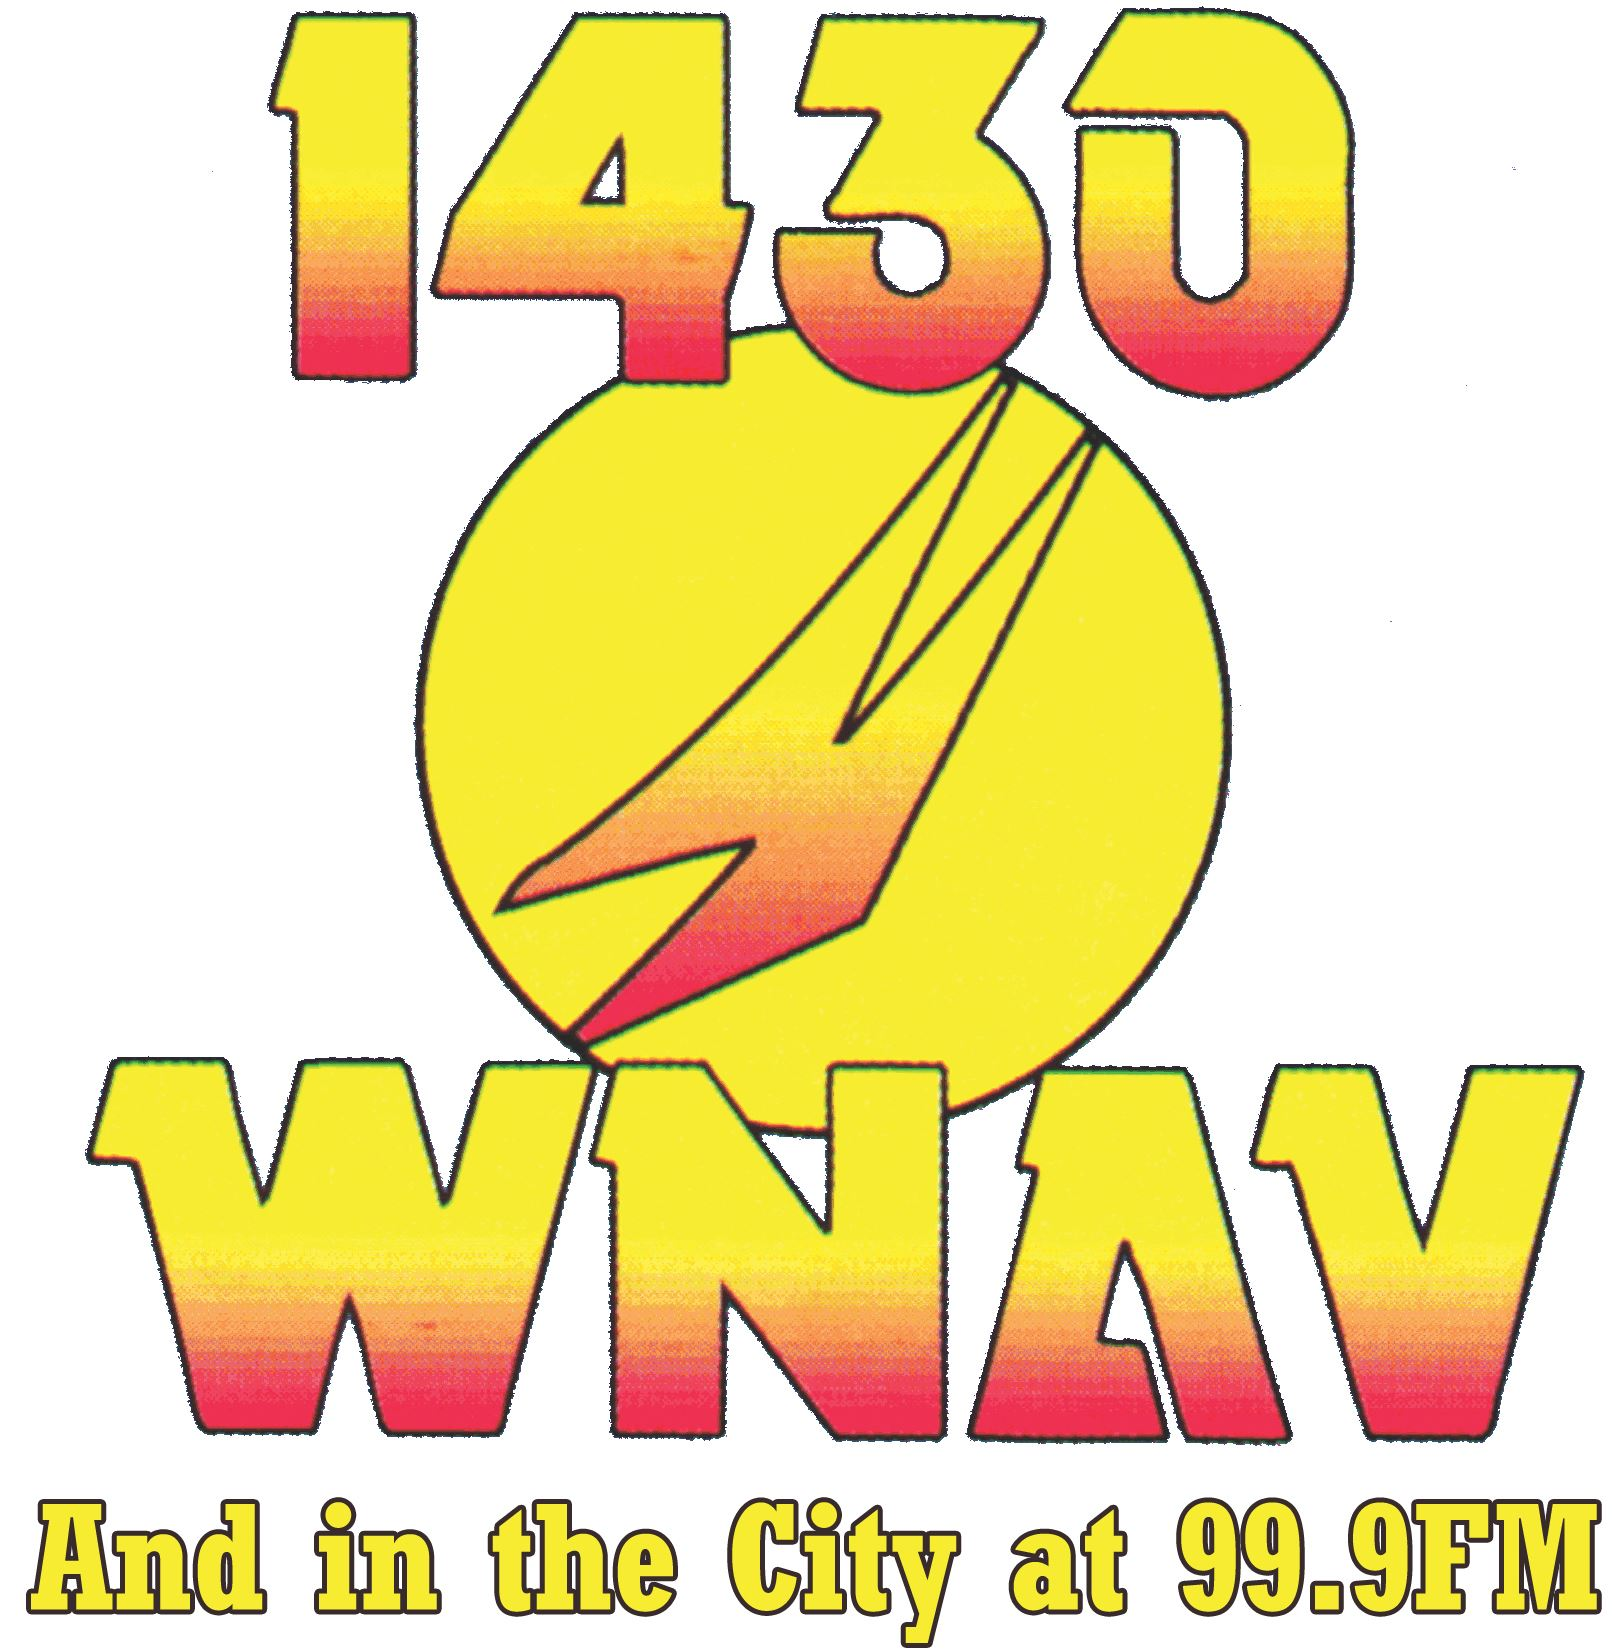 1430 WNAV And in the City at 99.9 FM Logo